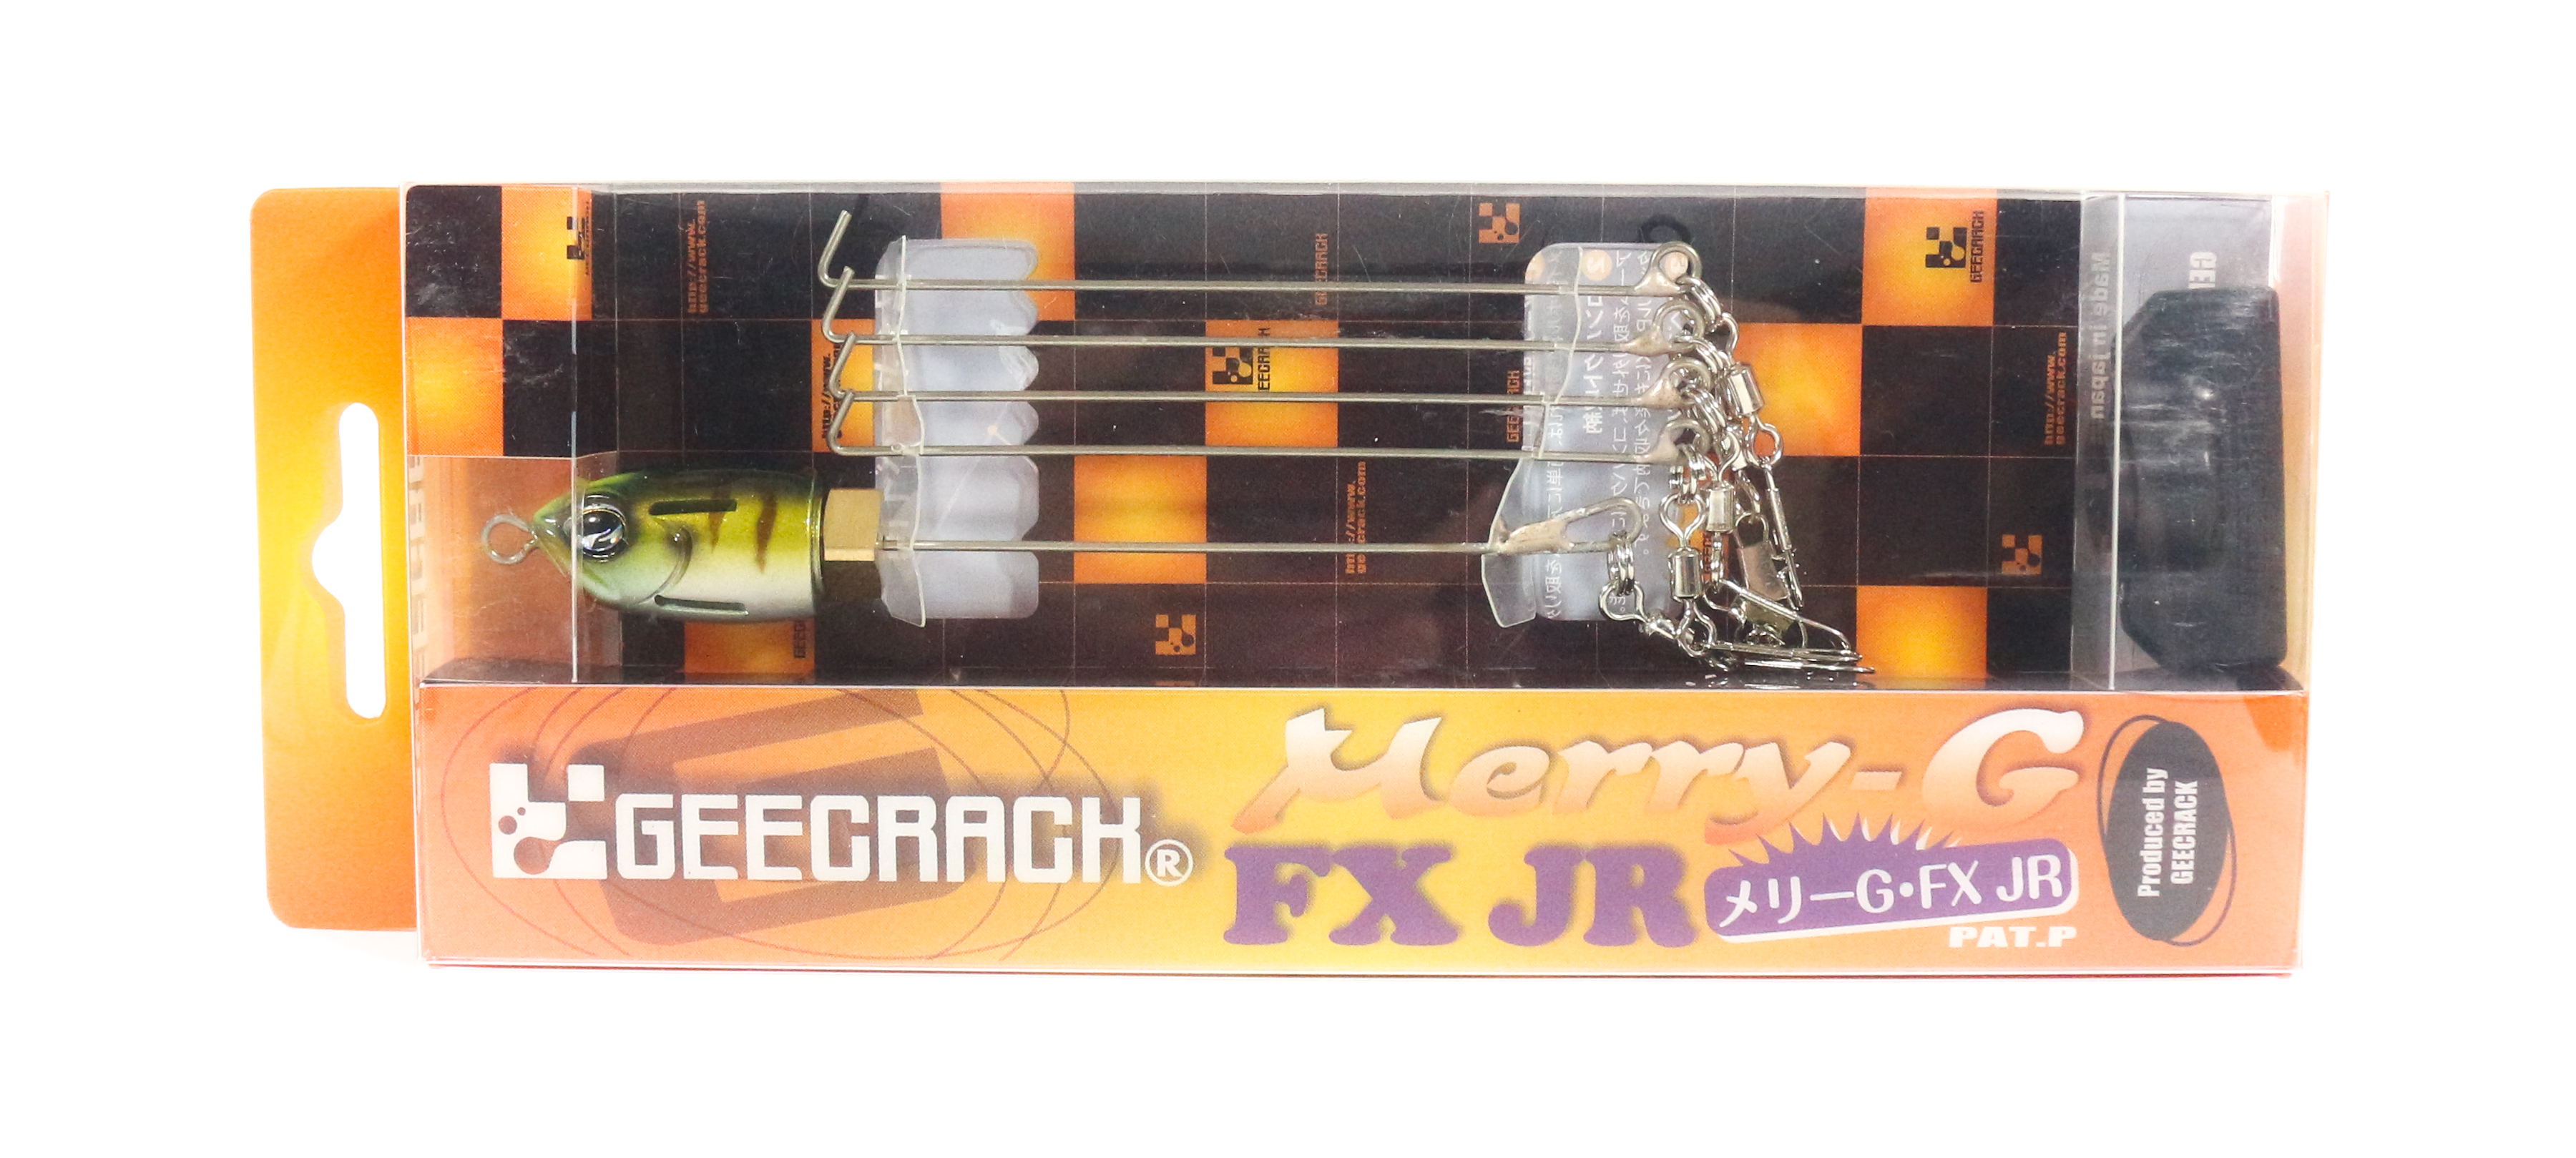 Sale Gee Crack Merry-G FX Jr Umbrella Rig 5/8 oz 012 (8200)